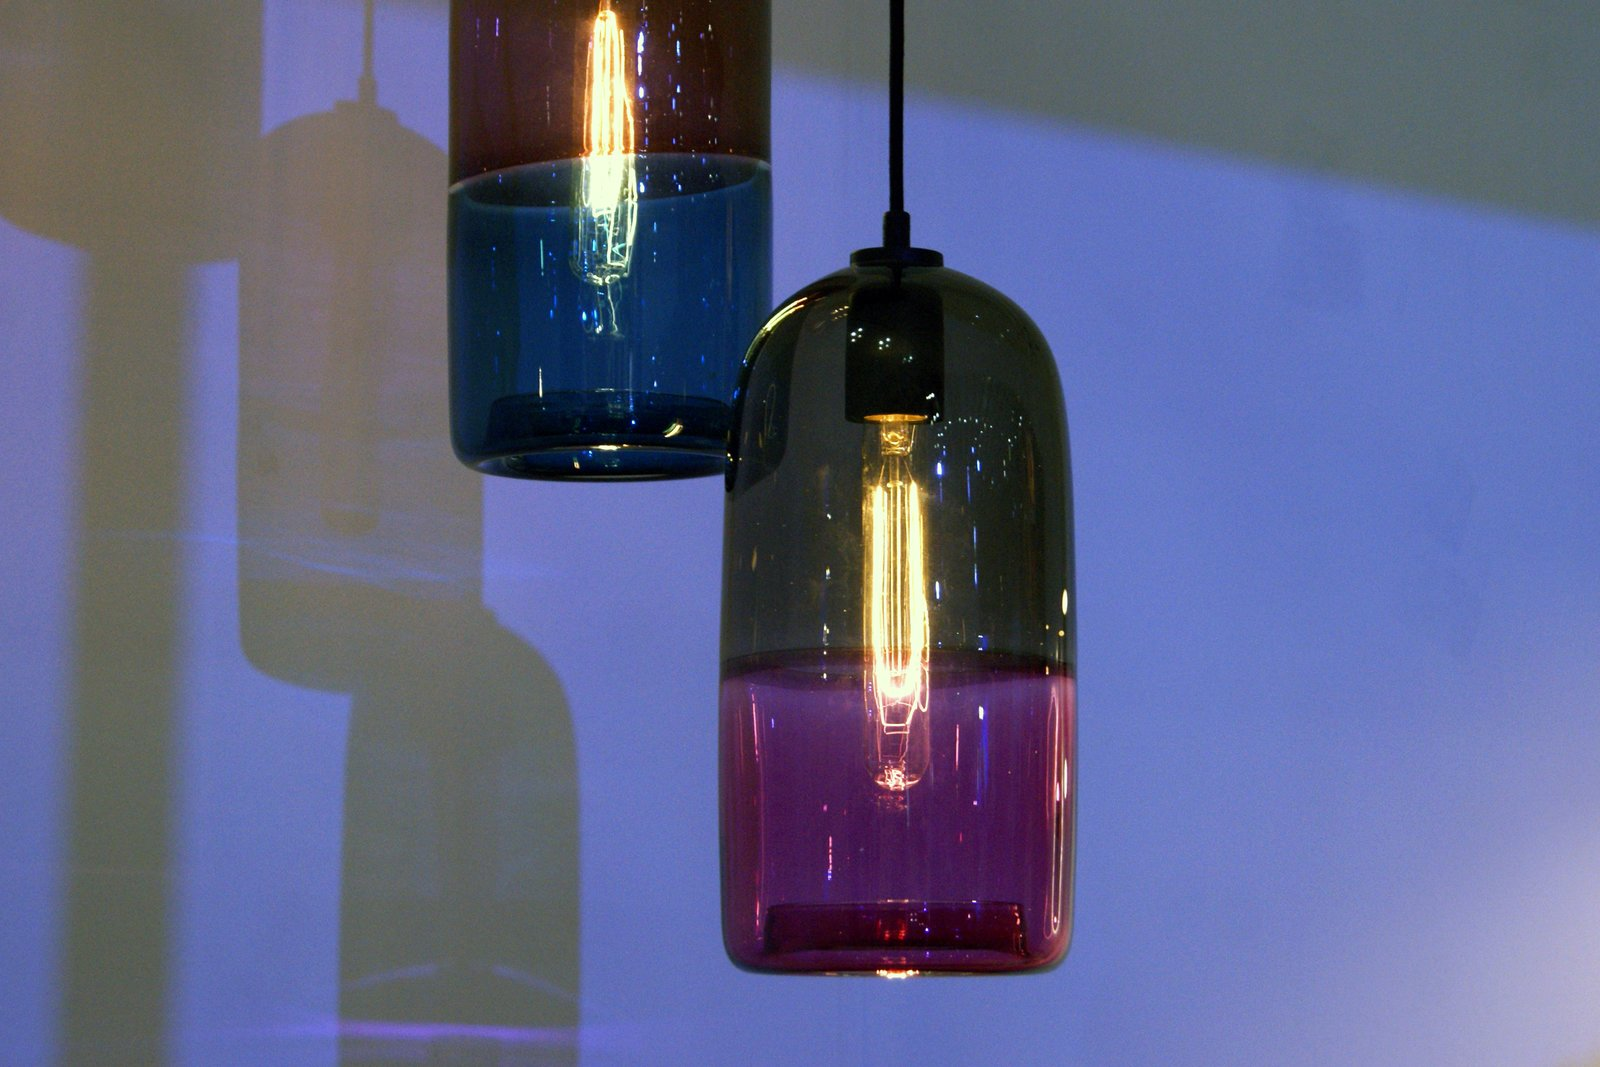 Over on the Australian Pavilion at 100% Design, Melbourne-based designer Mark Douglas exhibited a line of two-toned blown glass pendant lamps fitted with incandescent bulbs.  Key Trends from 2013 London Design Festival by Ali Morris